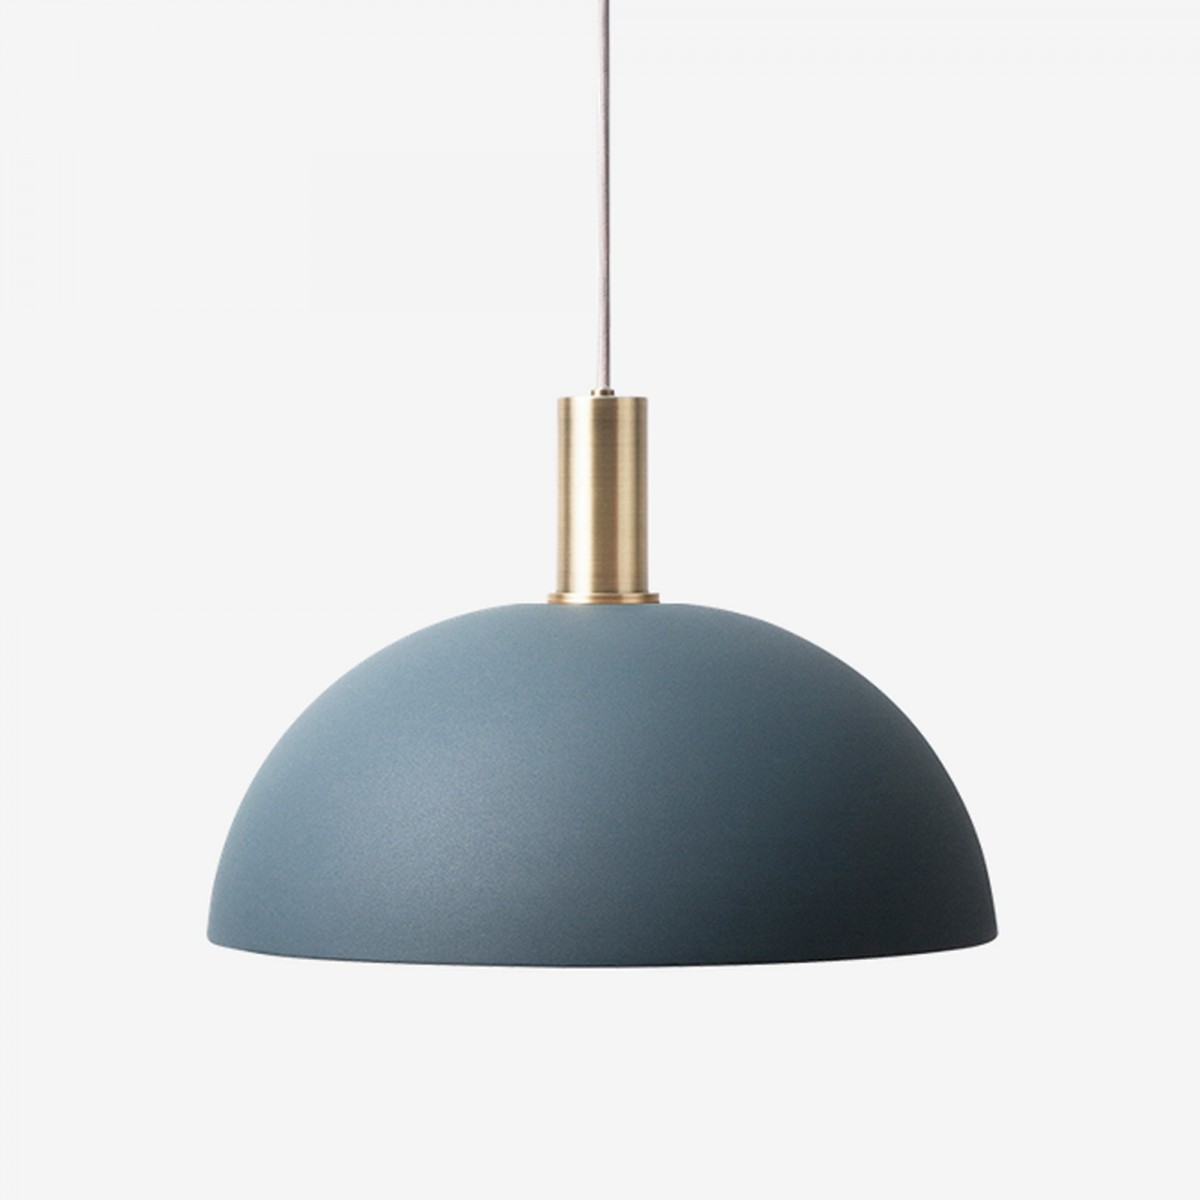 lighting pendant collect pendant dark blue dome